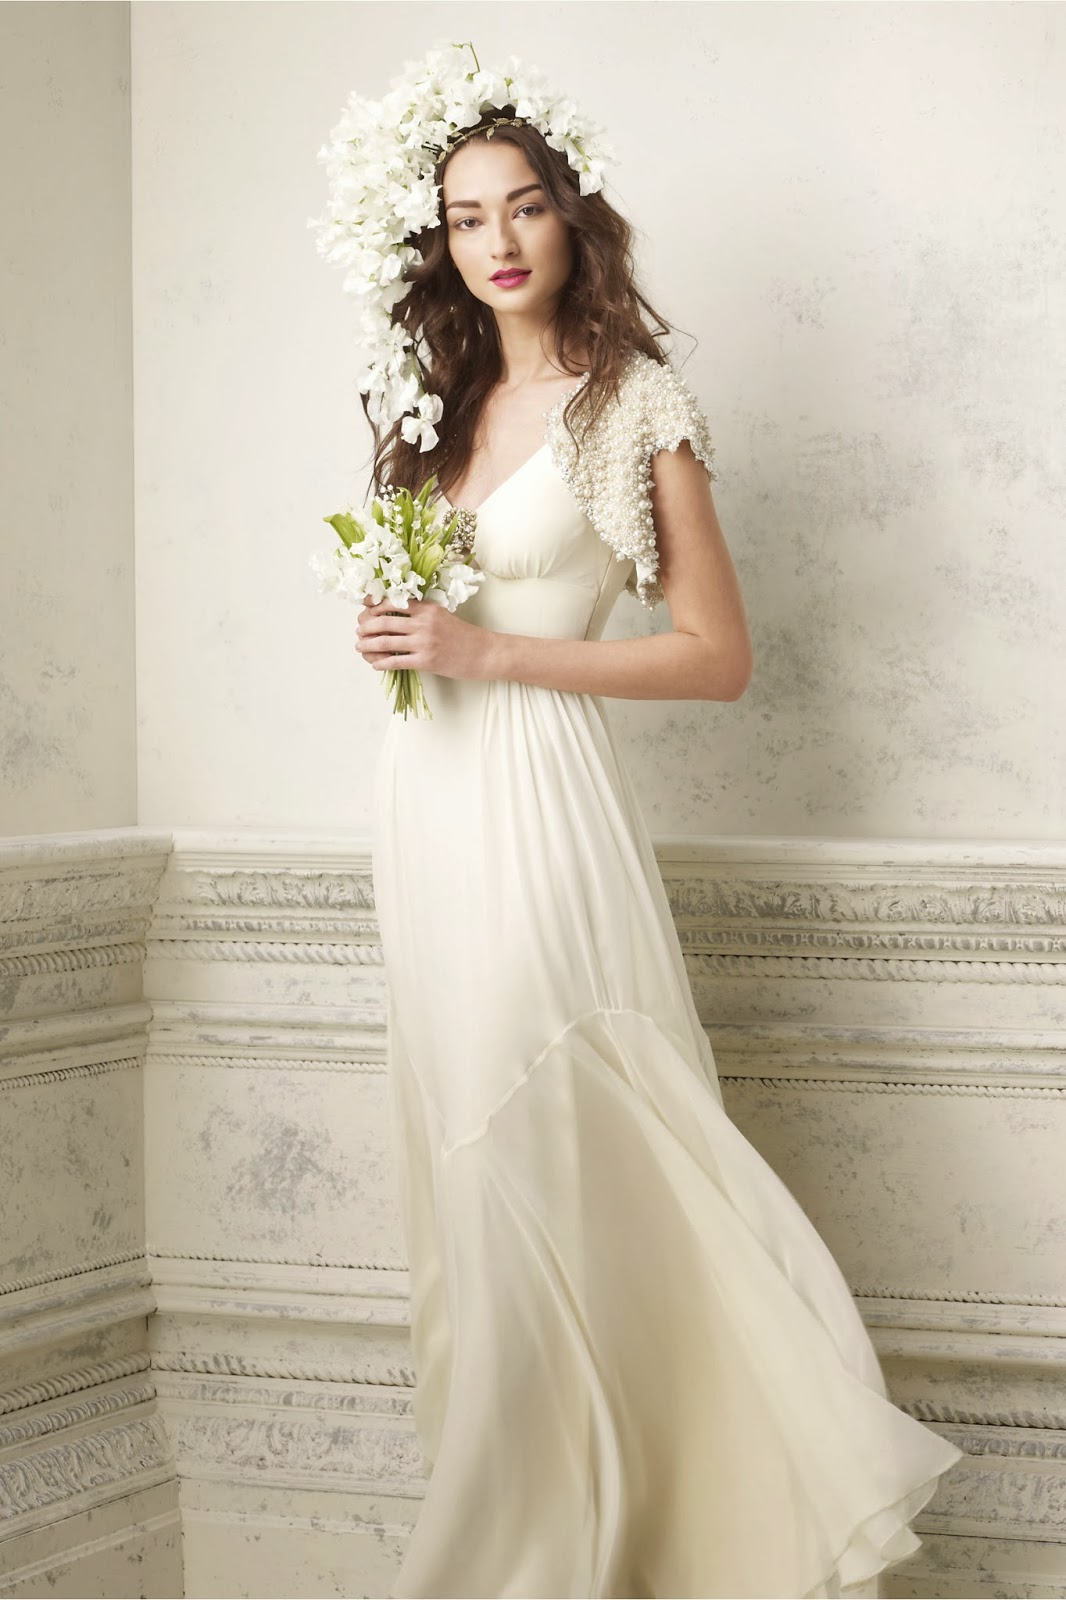 Wedding Dress Find Elegant Simple Wedding Dress. Wedding Dress With Black Lace. Flowy Maternity Wedding Dresses. Vera Wang Wedding Dresses Costco. Wedding Guest Dresses Lace. Wedding Dresses For Short Height Groom. Blue Wedding Dress Buy Online. Strapless Wedding Dresses Ball Gown With Diamonds. Vera Wang Wedding Dresses Online